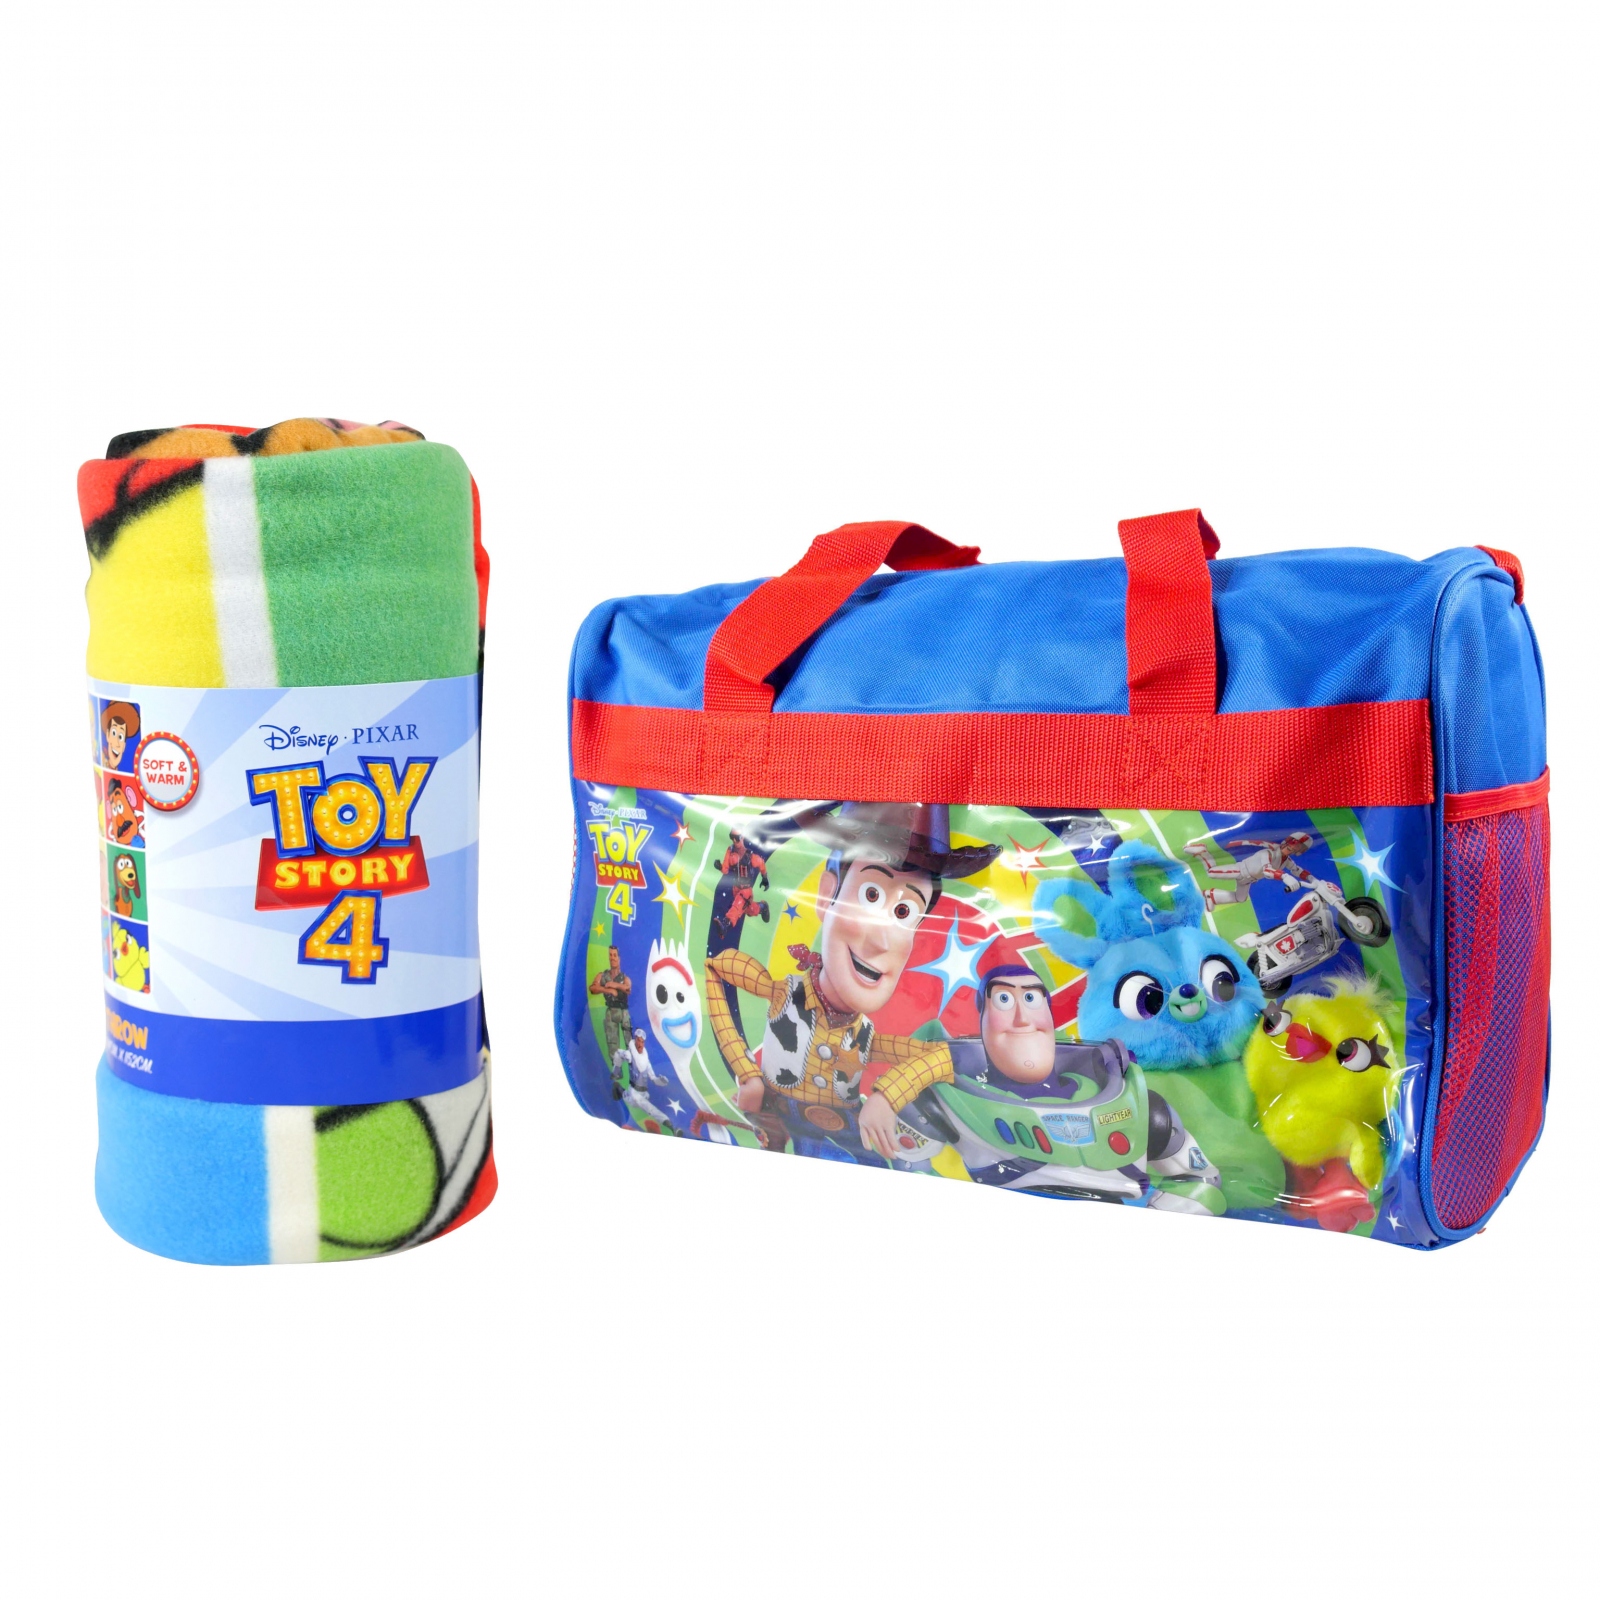 Disney Pixar Toy Story 4 Kids Sleepover Gift Set Blanket Bag